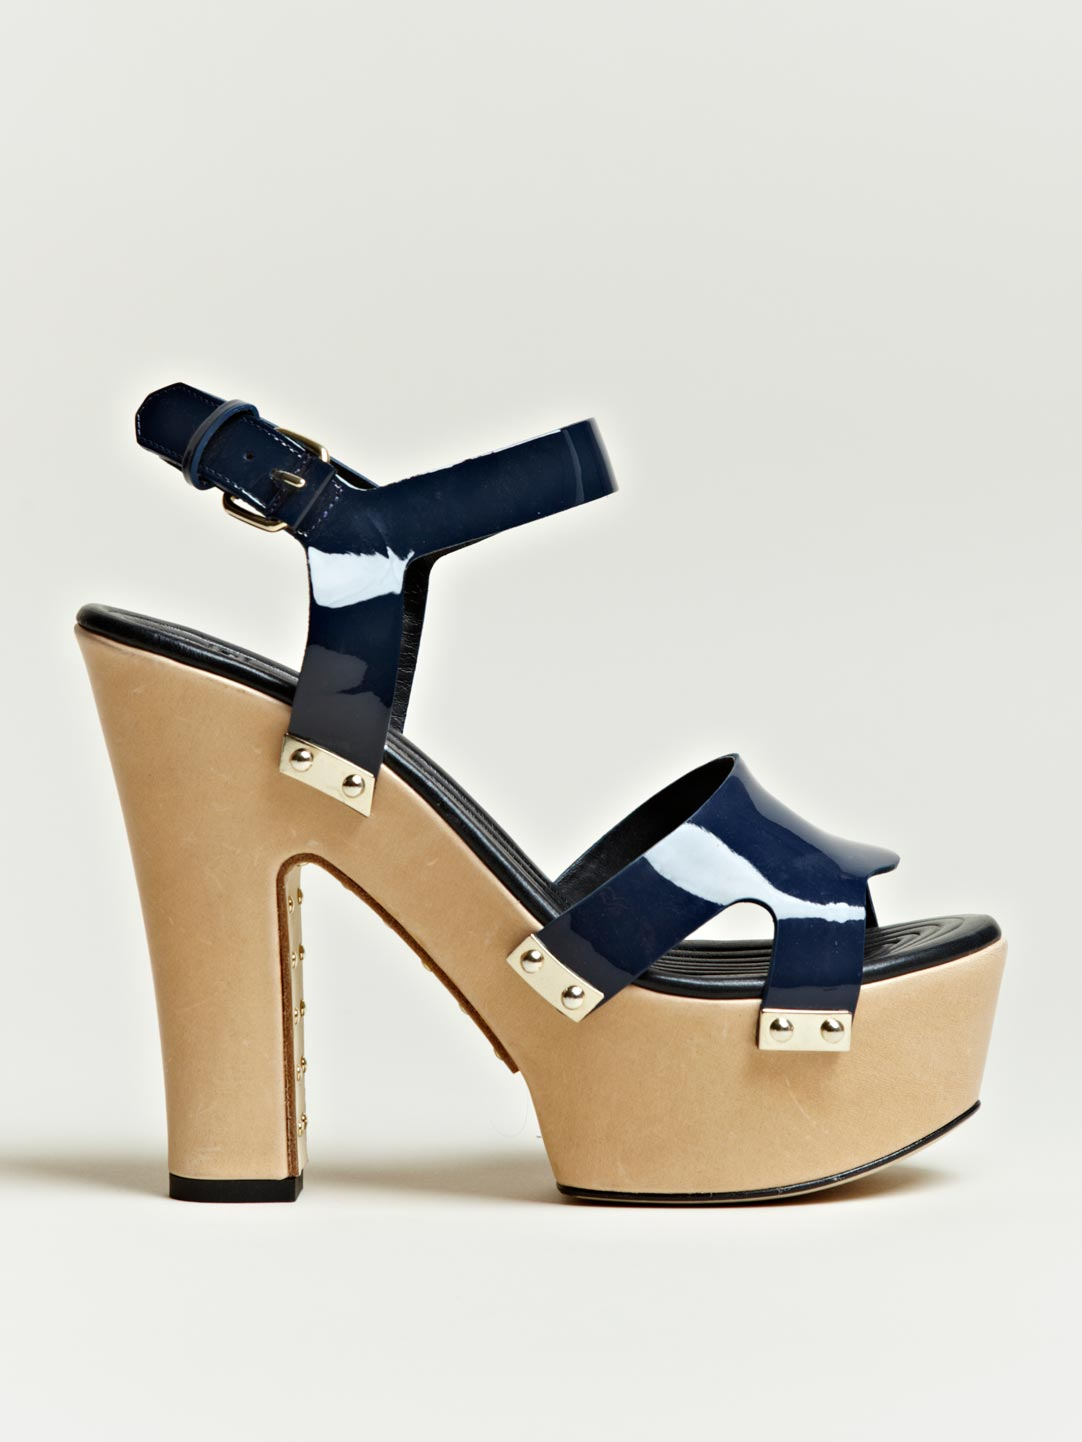 Navy Platform Shoes Sale: Save Up to 40% Off! Shop dolcehouse.ml's huge selection of Navy Platform Shoes - Over 20 styles available. FREE Shipping & Exchanges, and a % price guarantee!